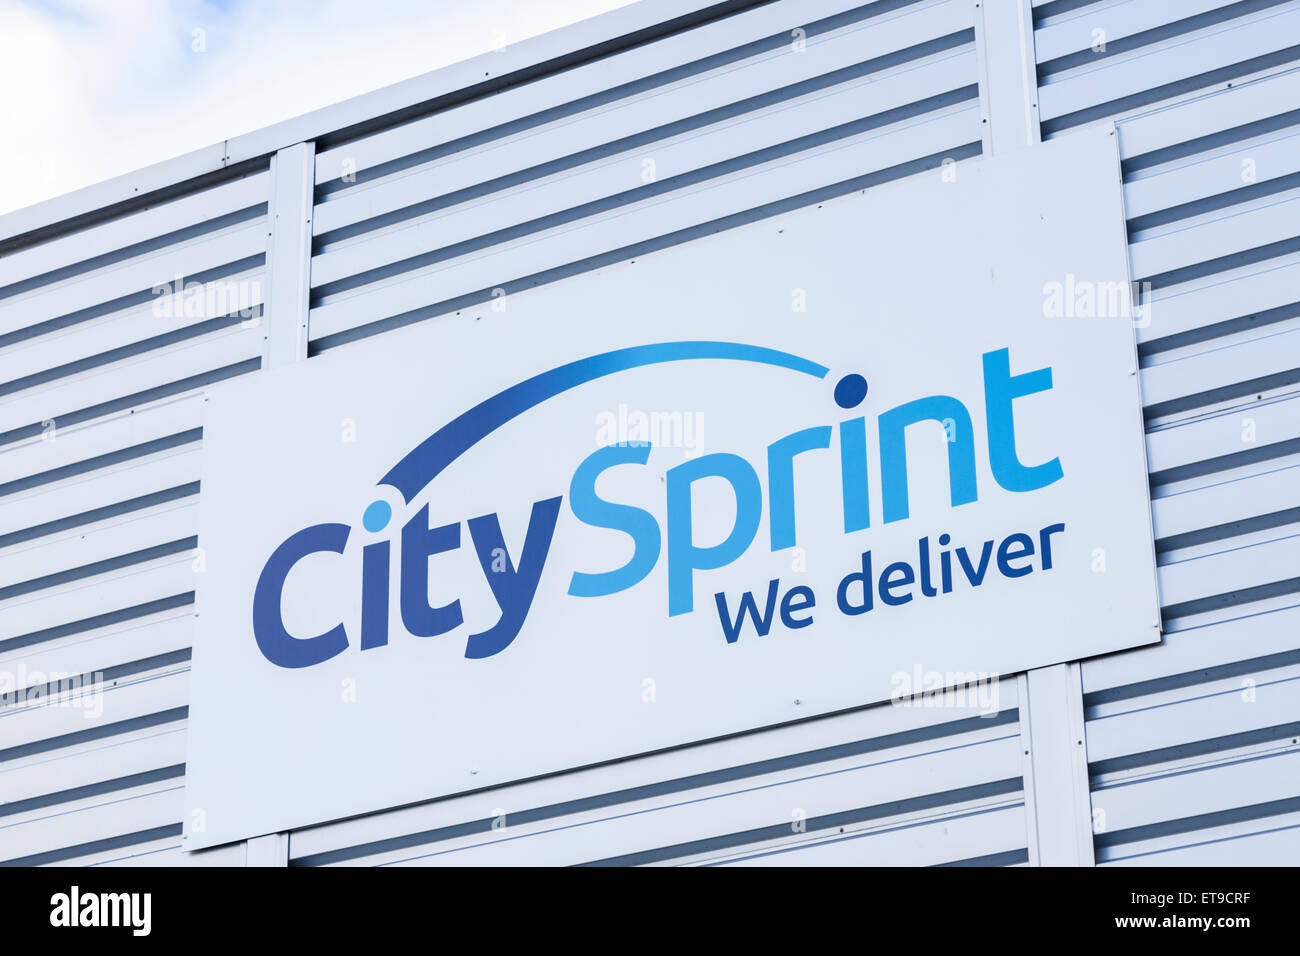 City Sprint sign, England, UK - Stock Image